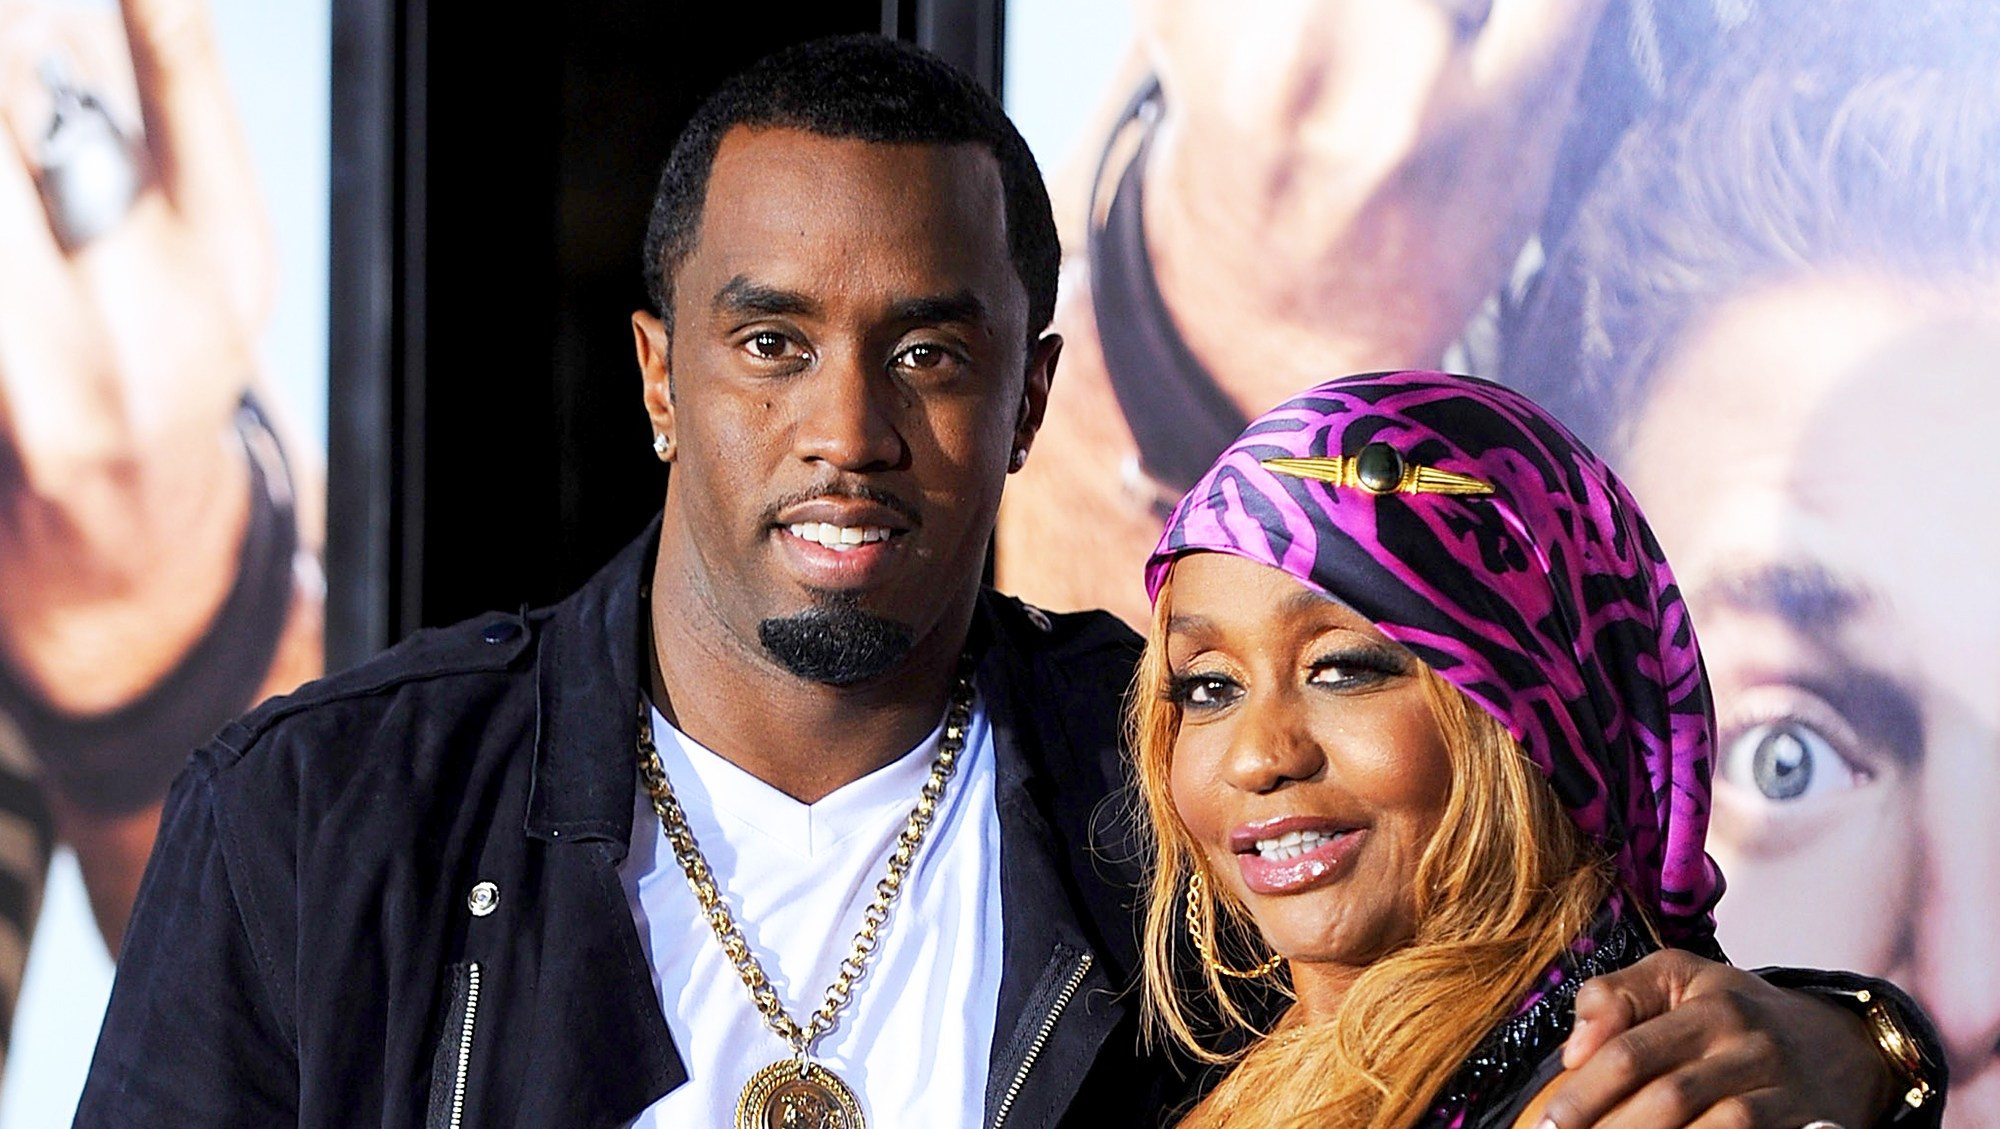 "Sean 'Diddy' Combs and his mother Janice arrives at the 2010 premiere of ""Get Him To The Greek"" at the Greek Theatre in Los Angeles, California."